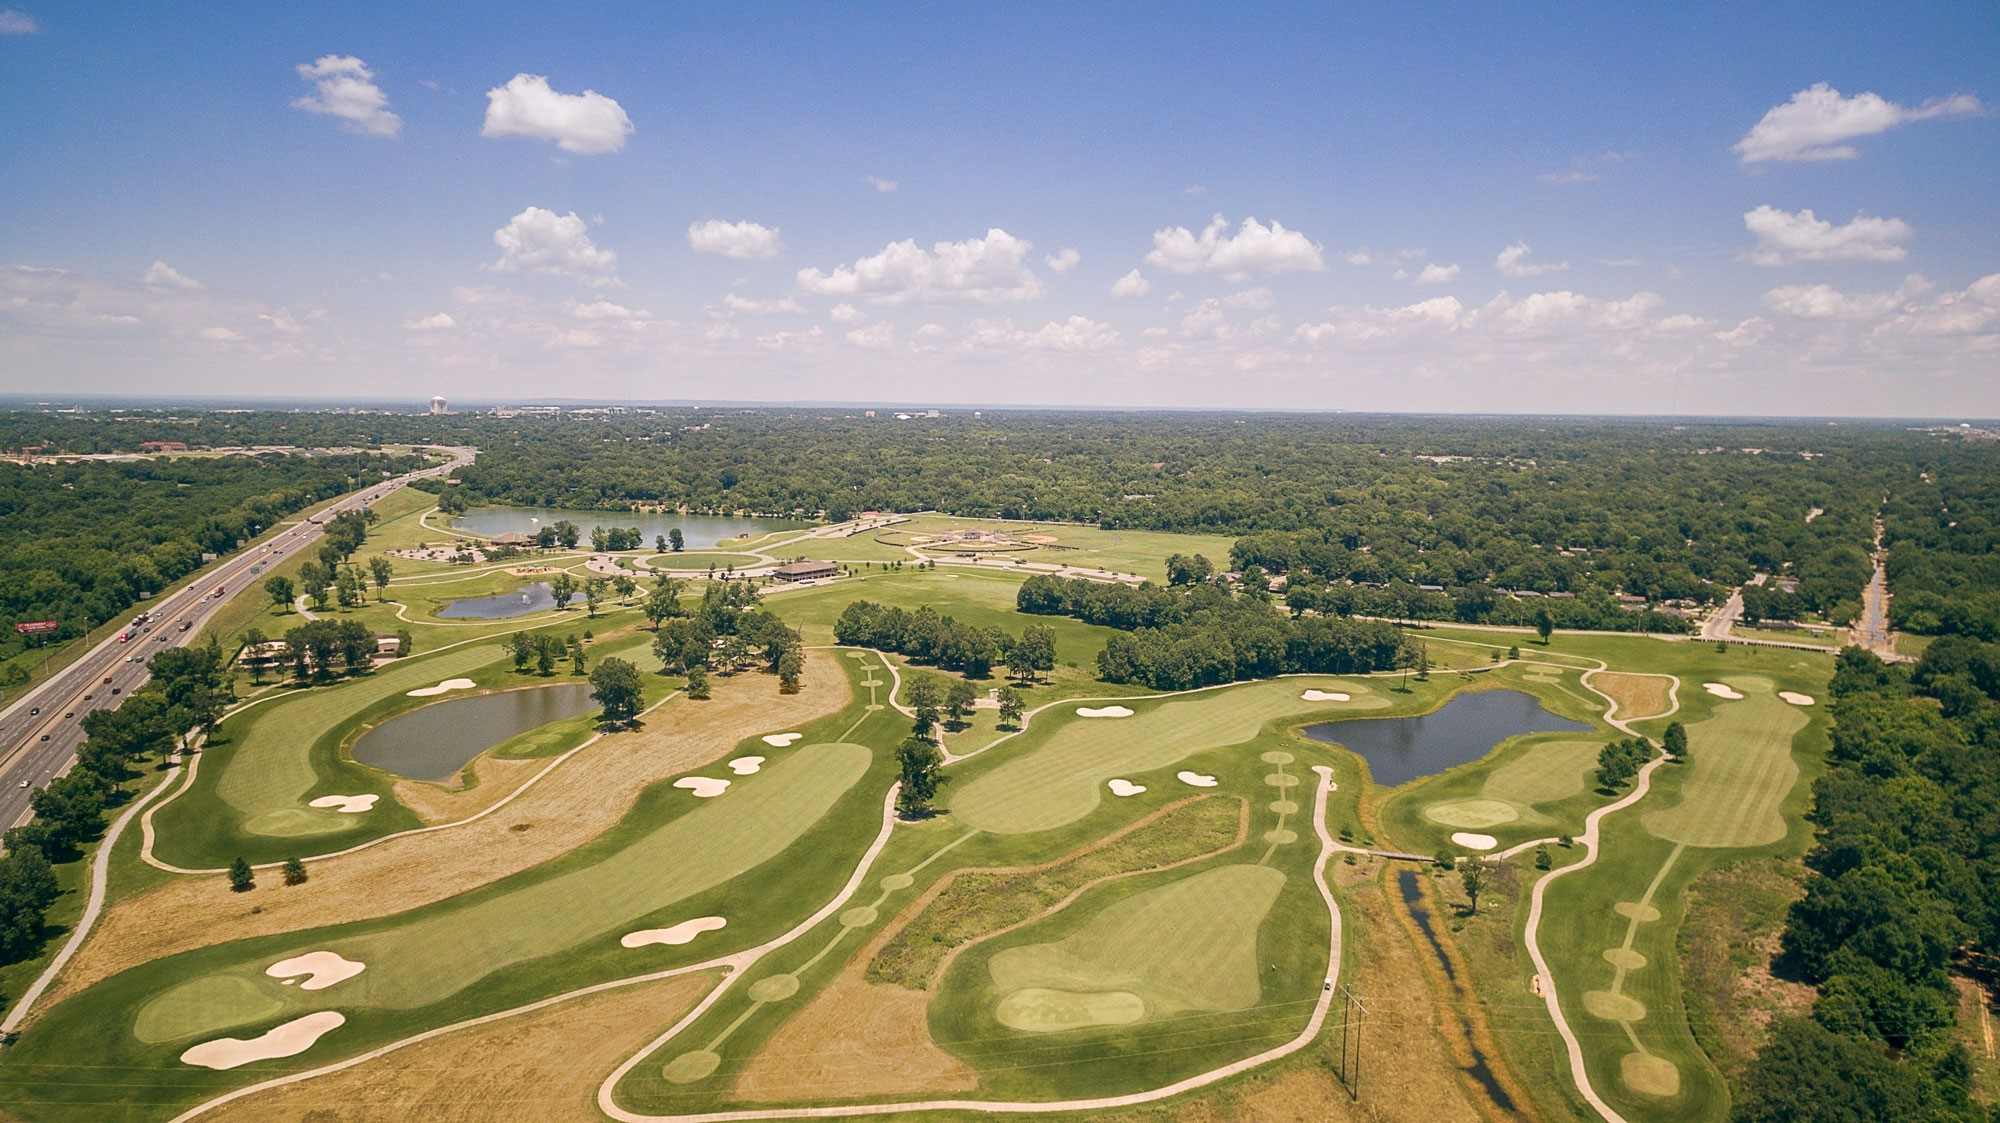 https://alabama-travel.s3.amazonaws.com/partners-uploads/photo/image/5ed935a55071db000751cbd5/Gateway Park Golf Course, Montgomery, Ala. d.jpg